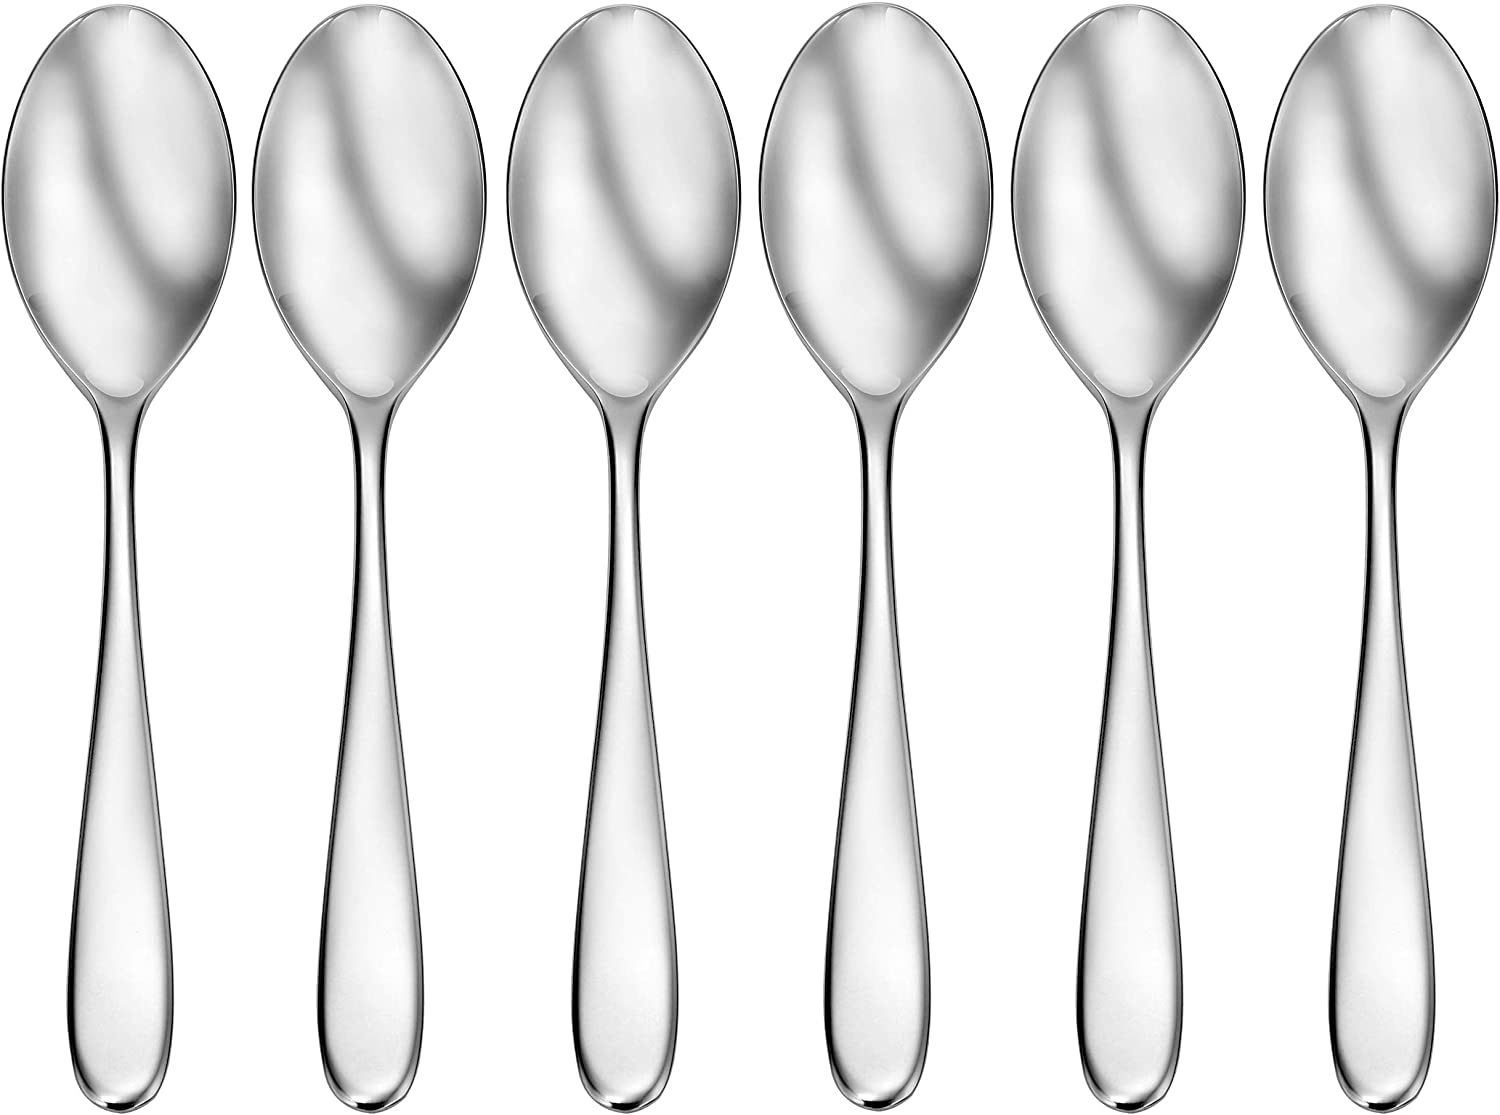 Amazon Com Craftkitchen Open Stock Stainless Steel Flatware Sets Classic Dinner Spoons Set Of 6 Flatware Sets